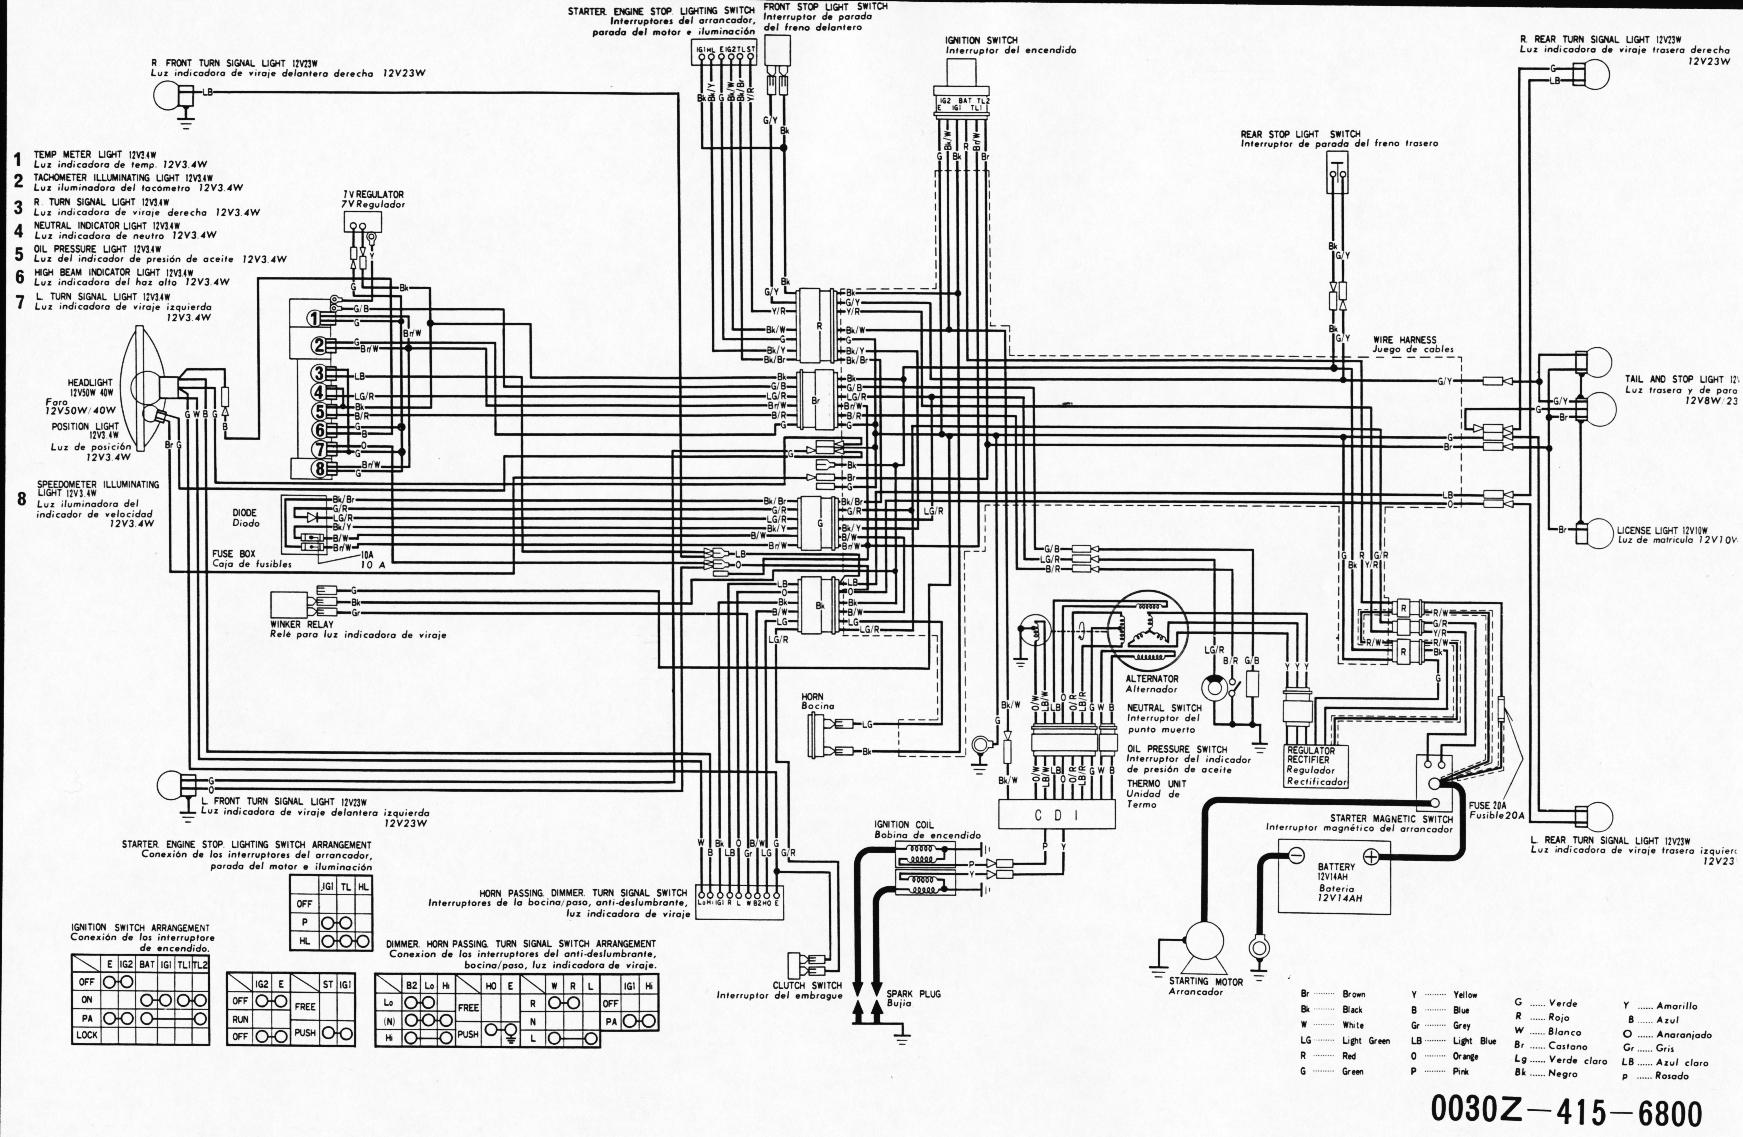 File:1978 honda cx500 wiring diagram aus.jpg